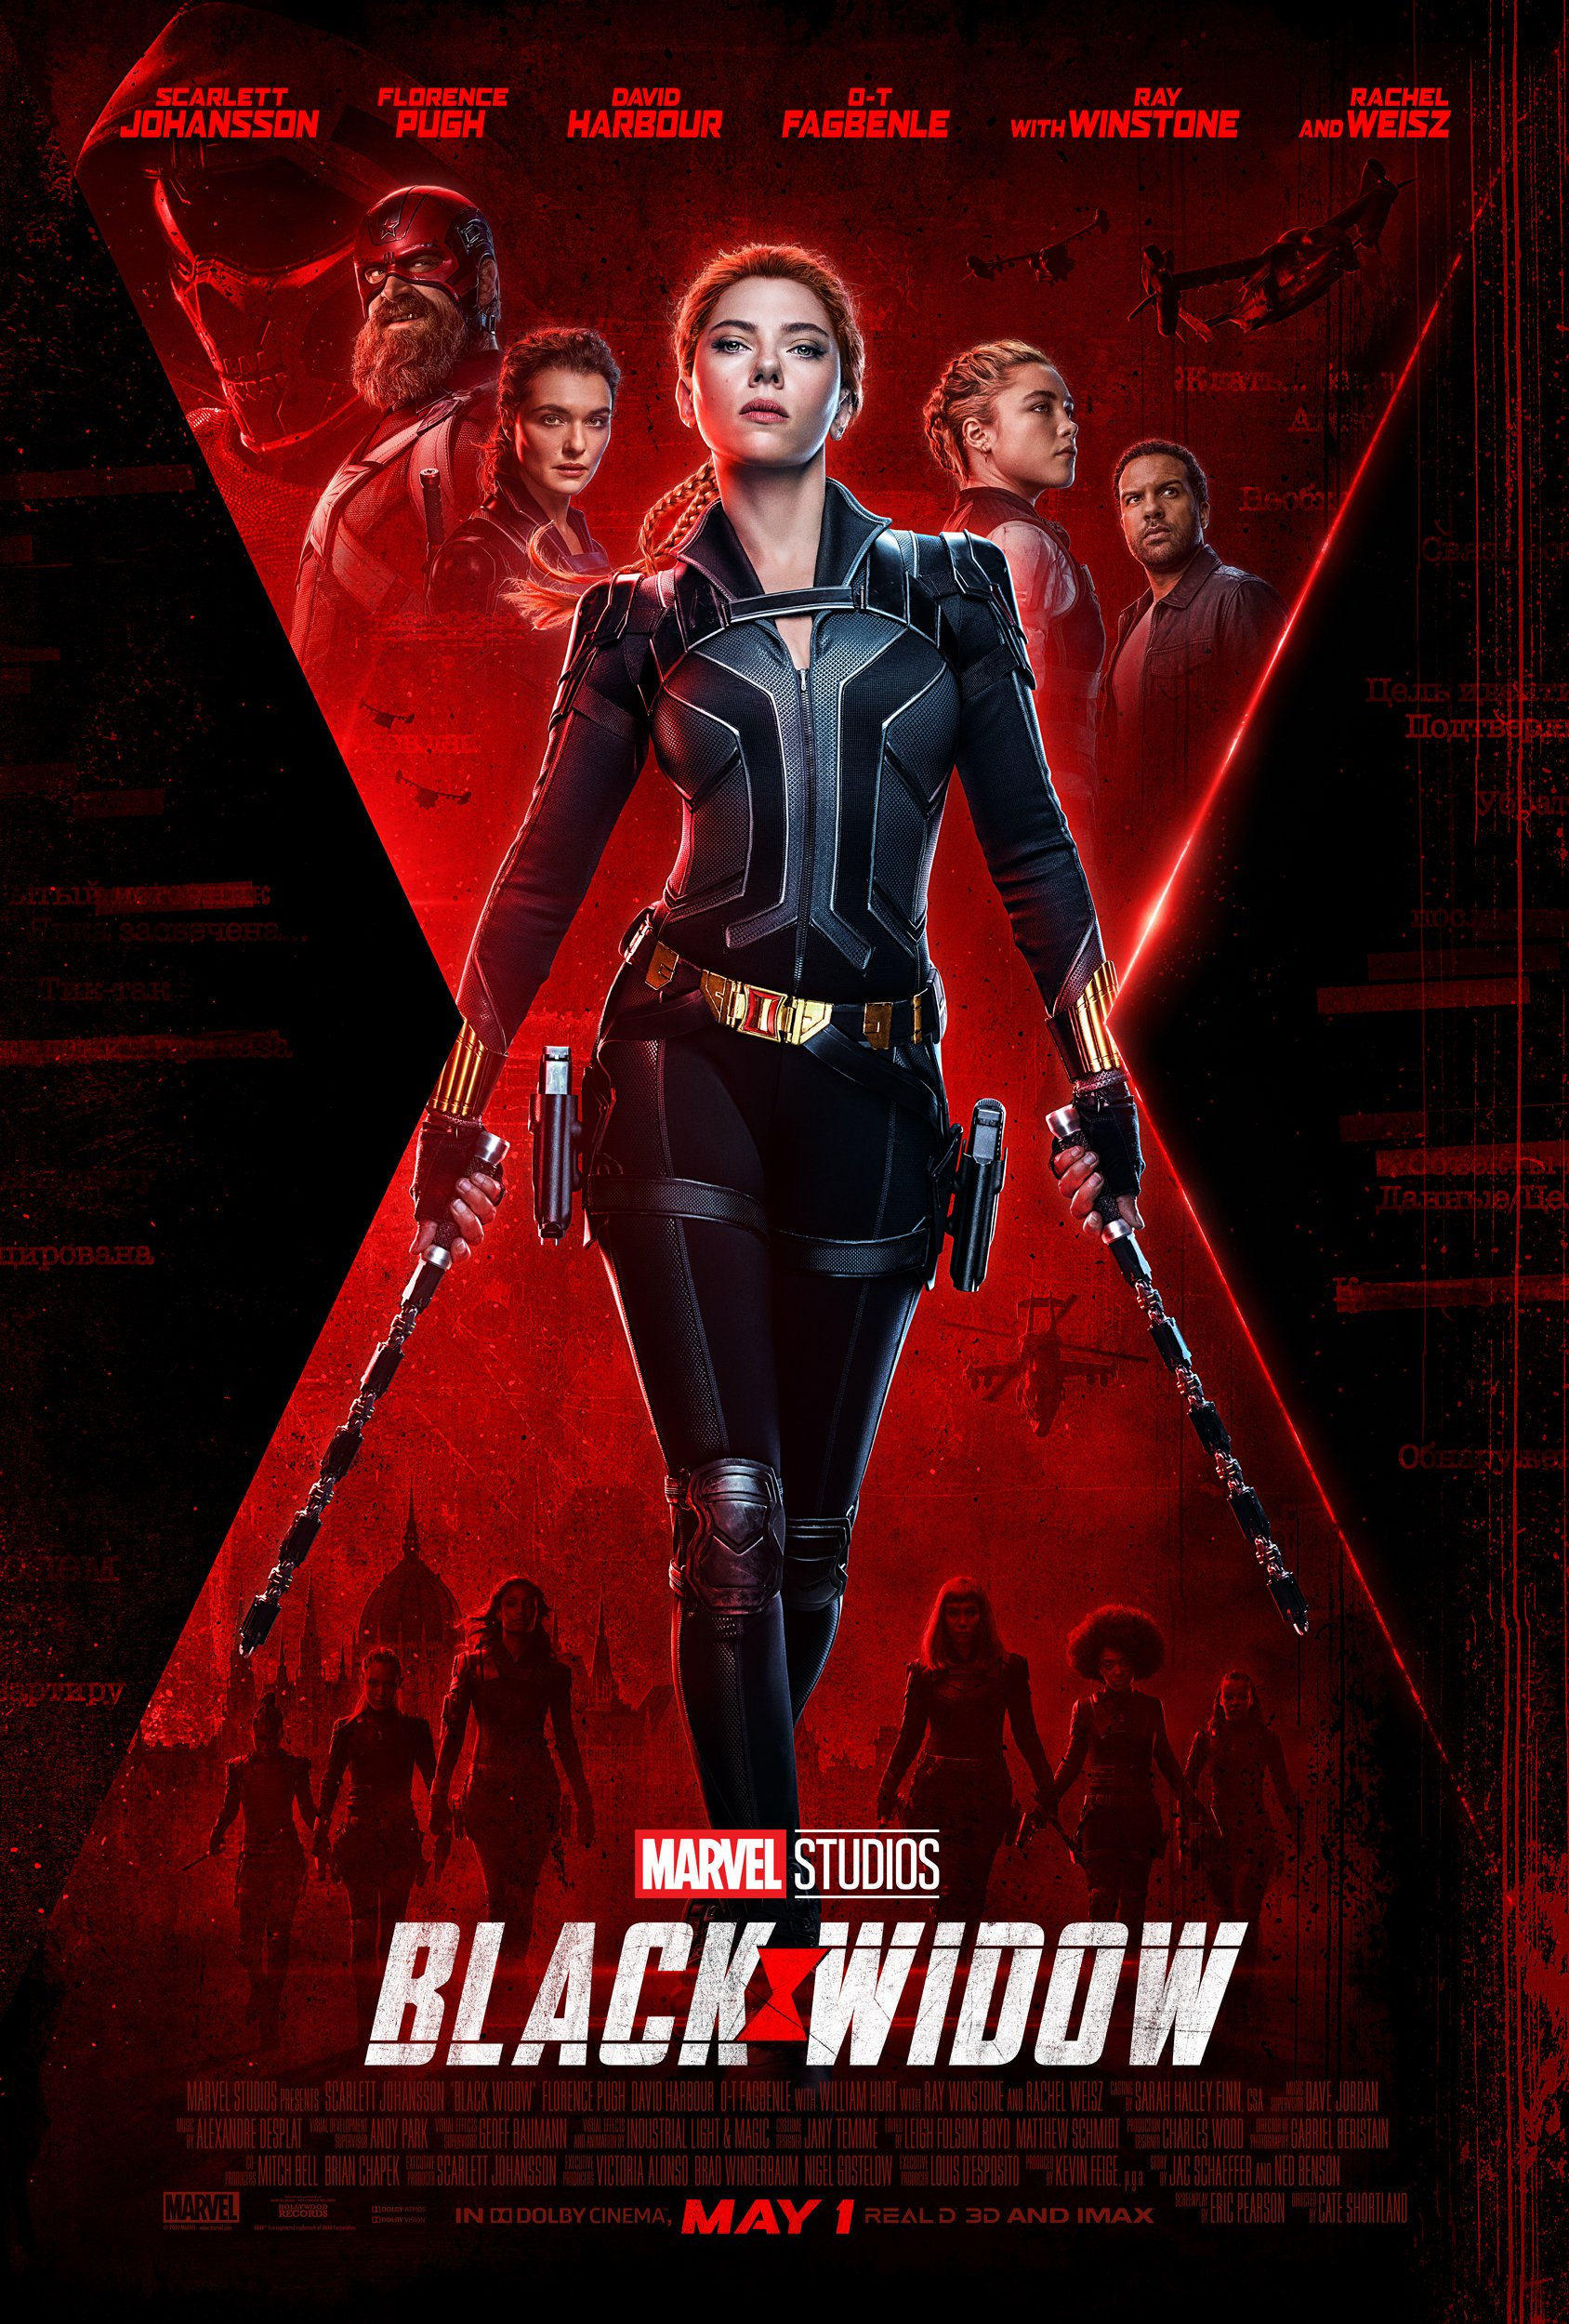 Marvel Studios Black Widow New Trailer Released